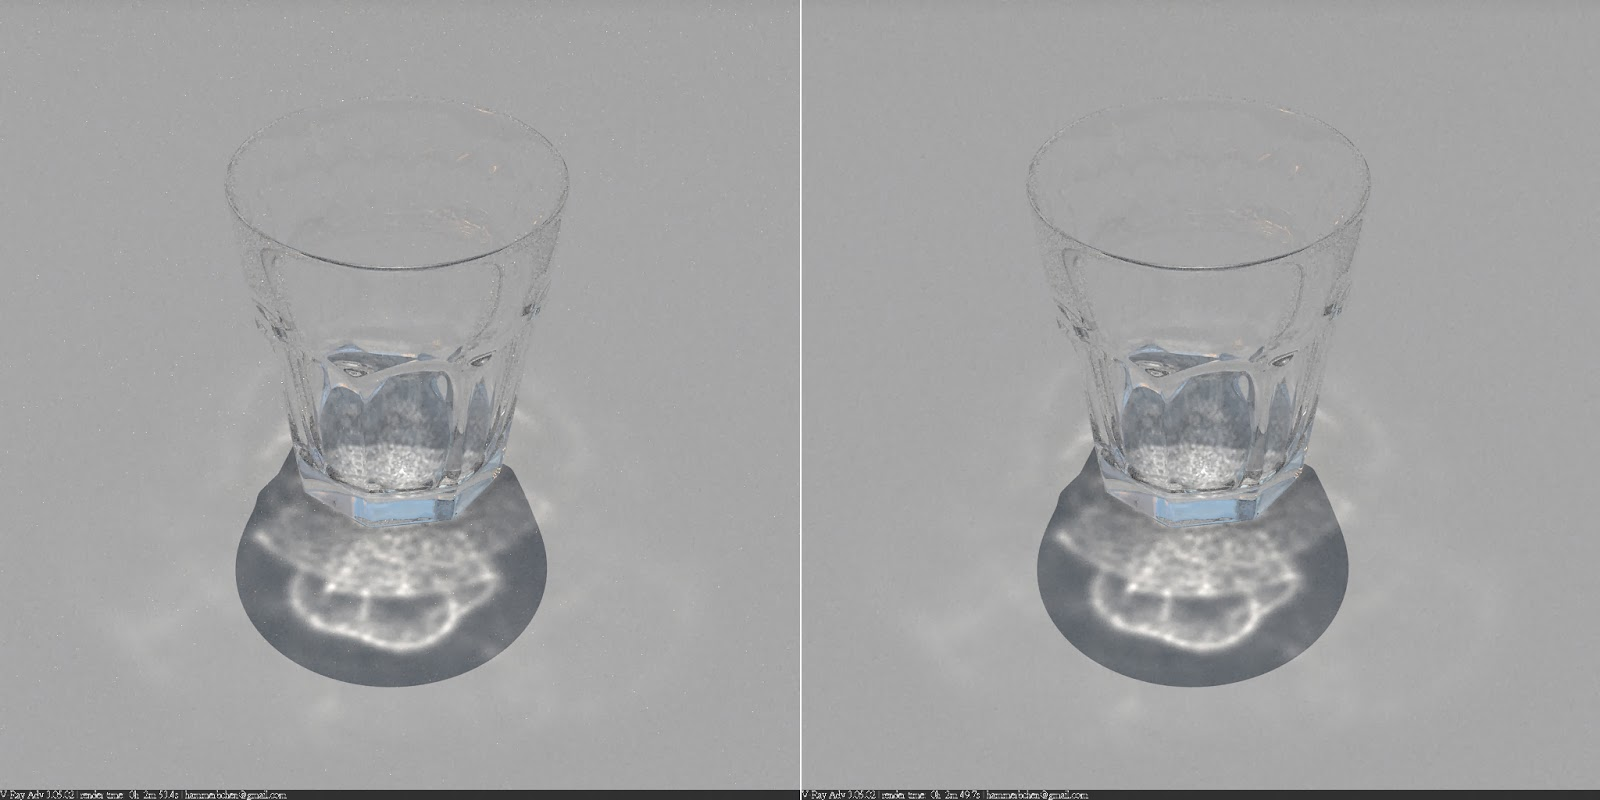 Vray 3 0-19_max_ray_intens_compare.jpg